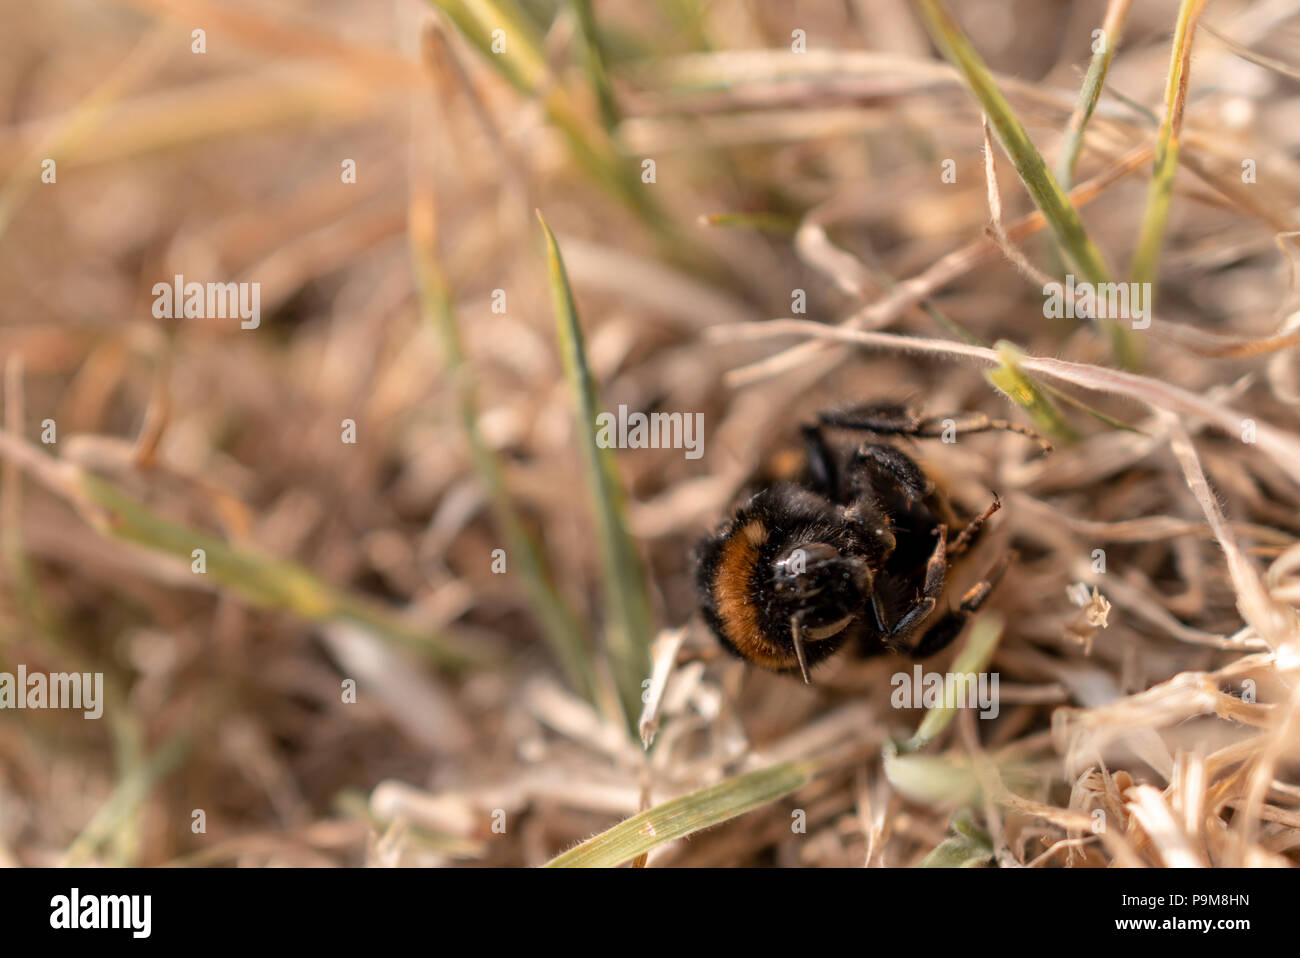 Poole, UK. 19th July 2018. Heatwave with very dry weather continues in the UK. Grass is turned brown and a bumble-bee is found dead. Credit: Thomas Faull/Alamy Live News Stock Photo